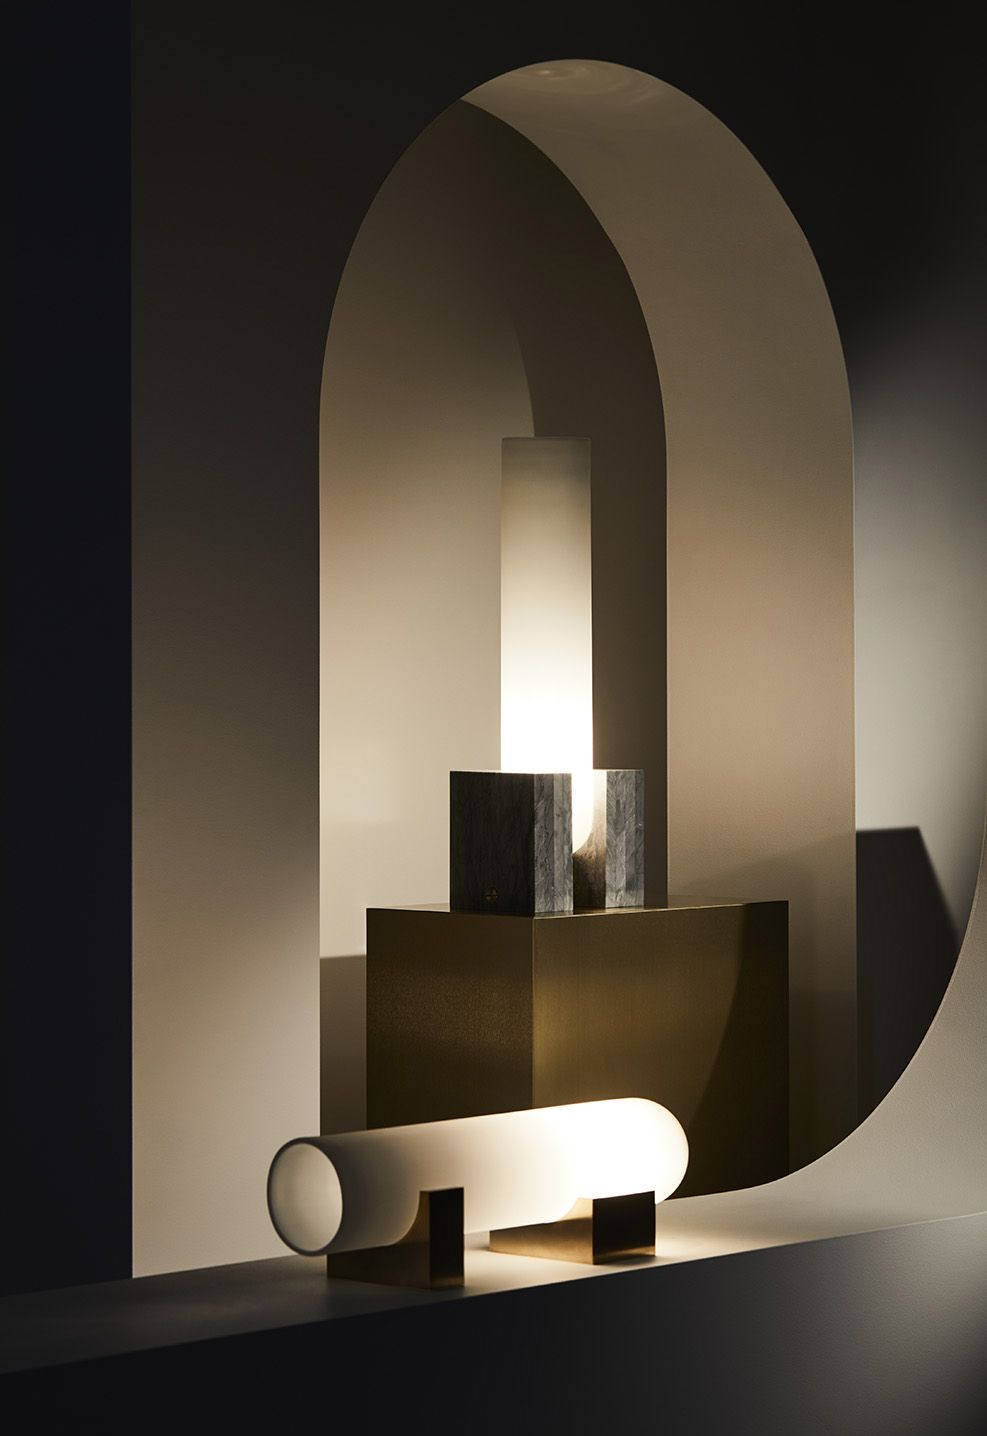 Table Lamp In Bedroom